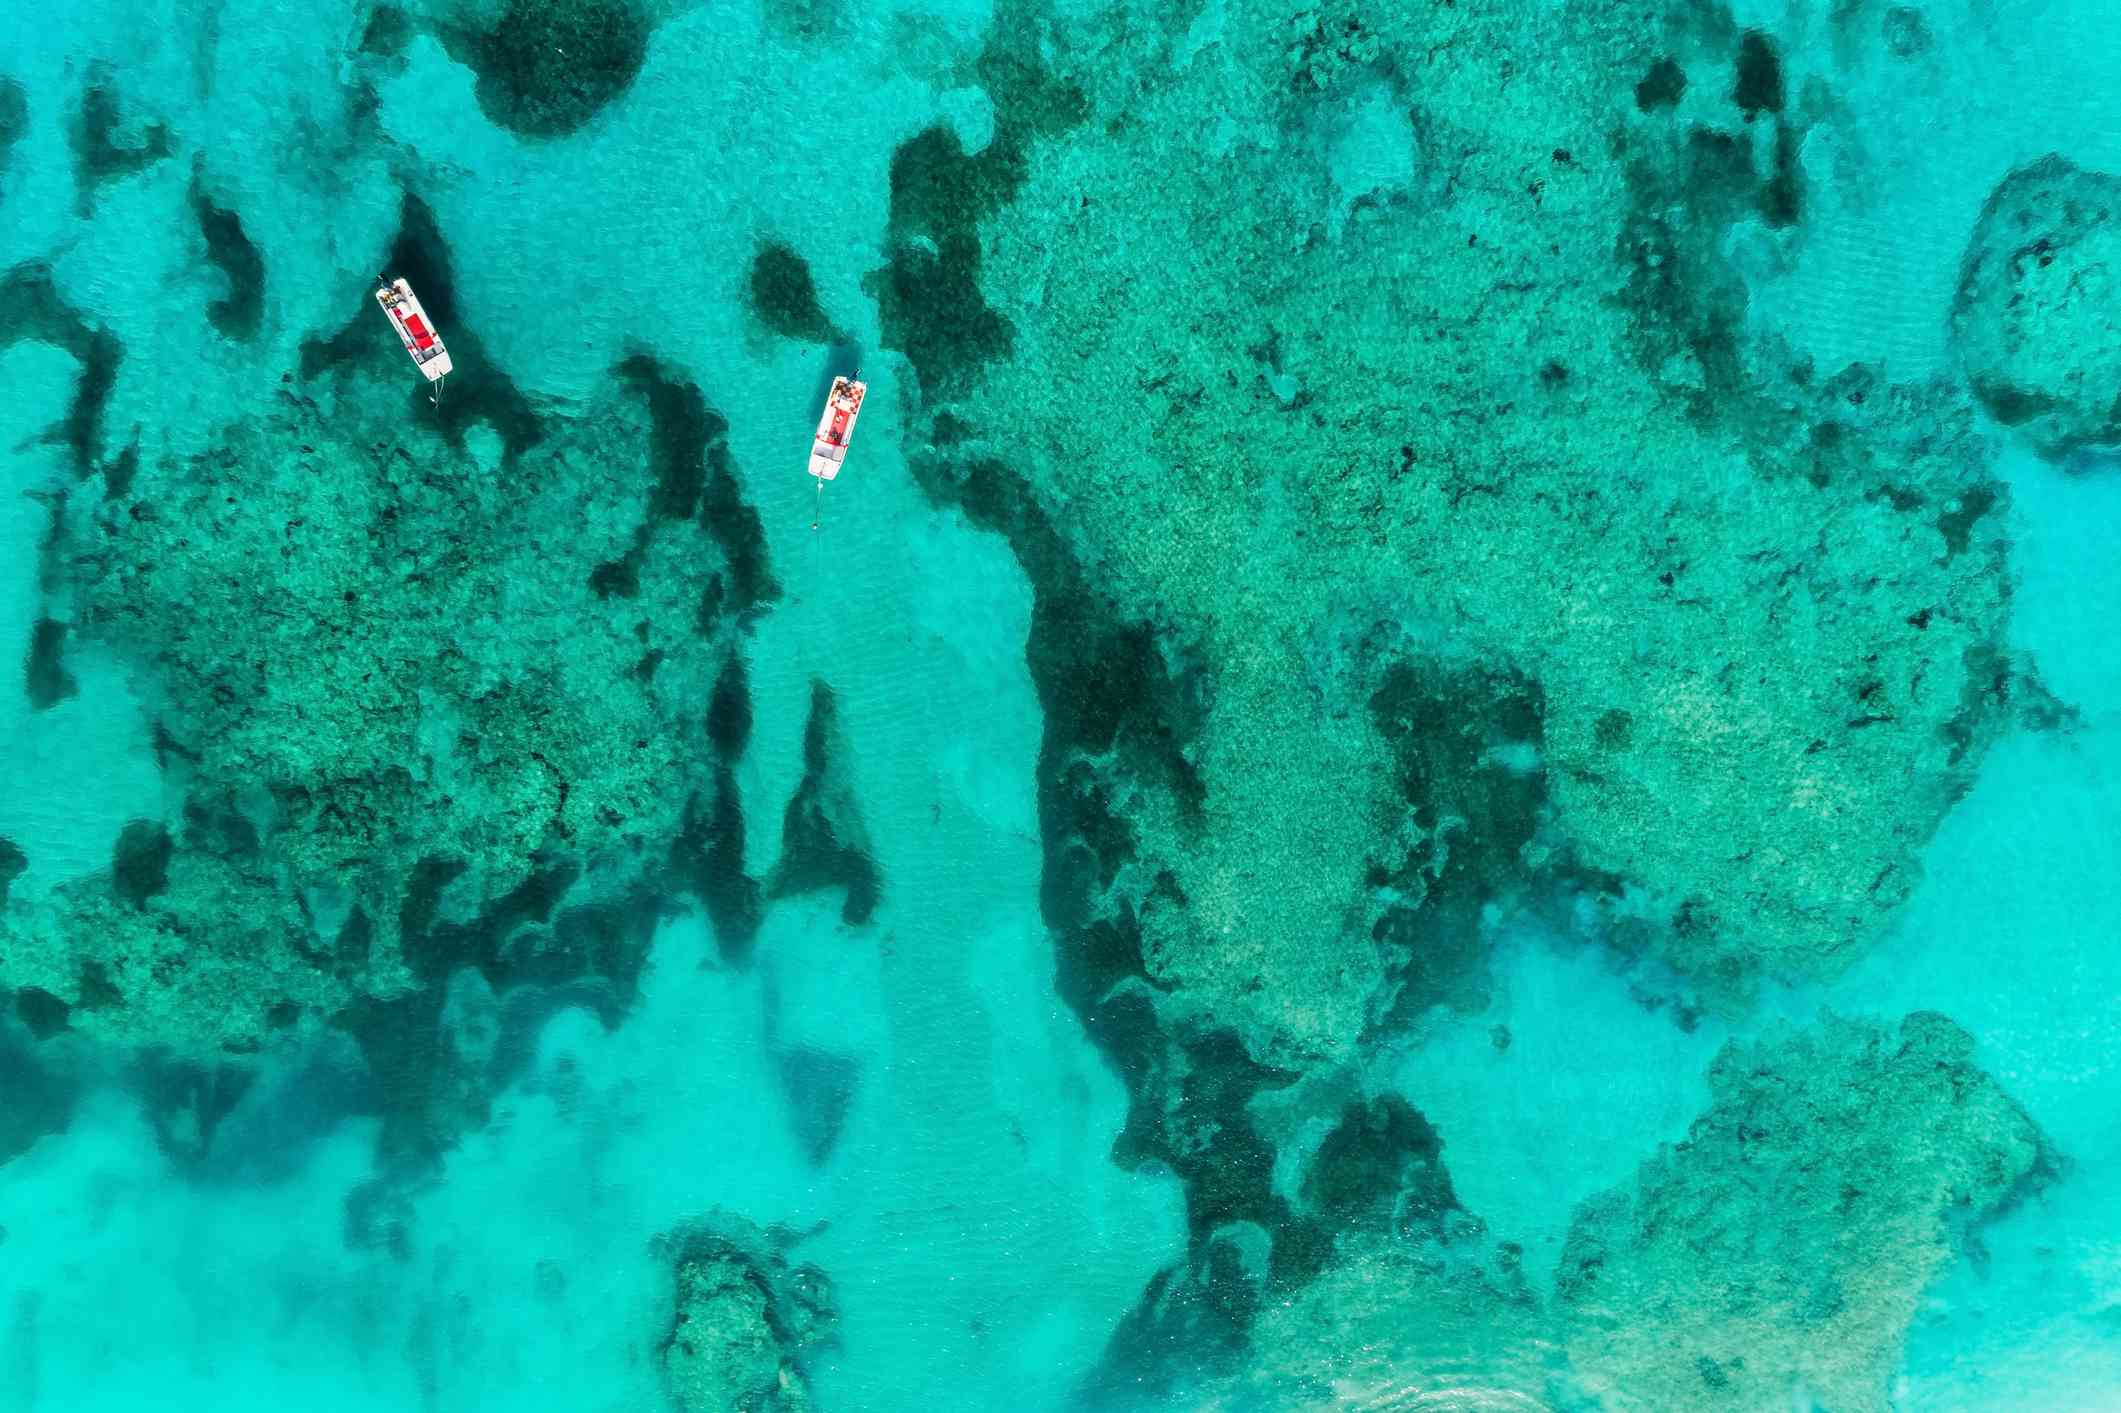 Snorkeling the reef in Turks & Caicos